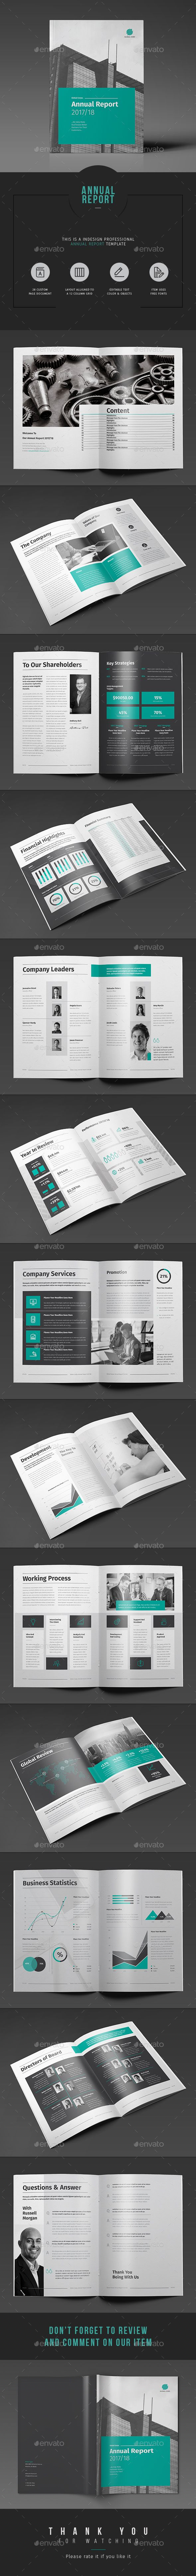 Annual Report | Annual reports, Grid layouts and Template